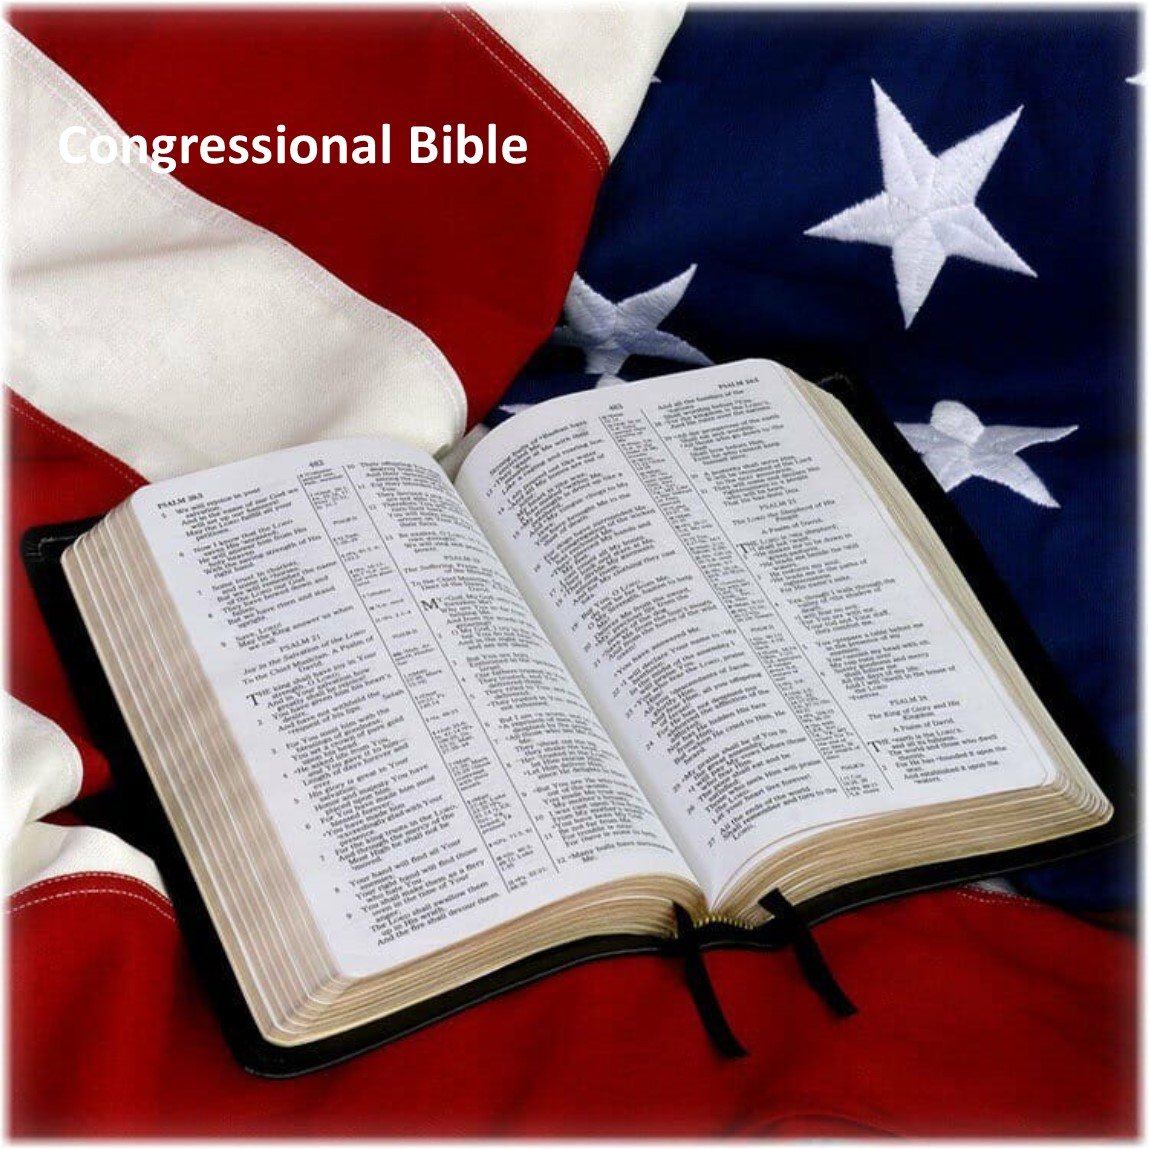 congressional Bible